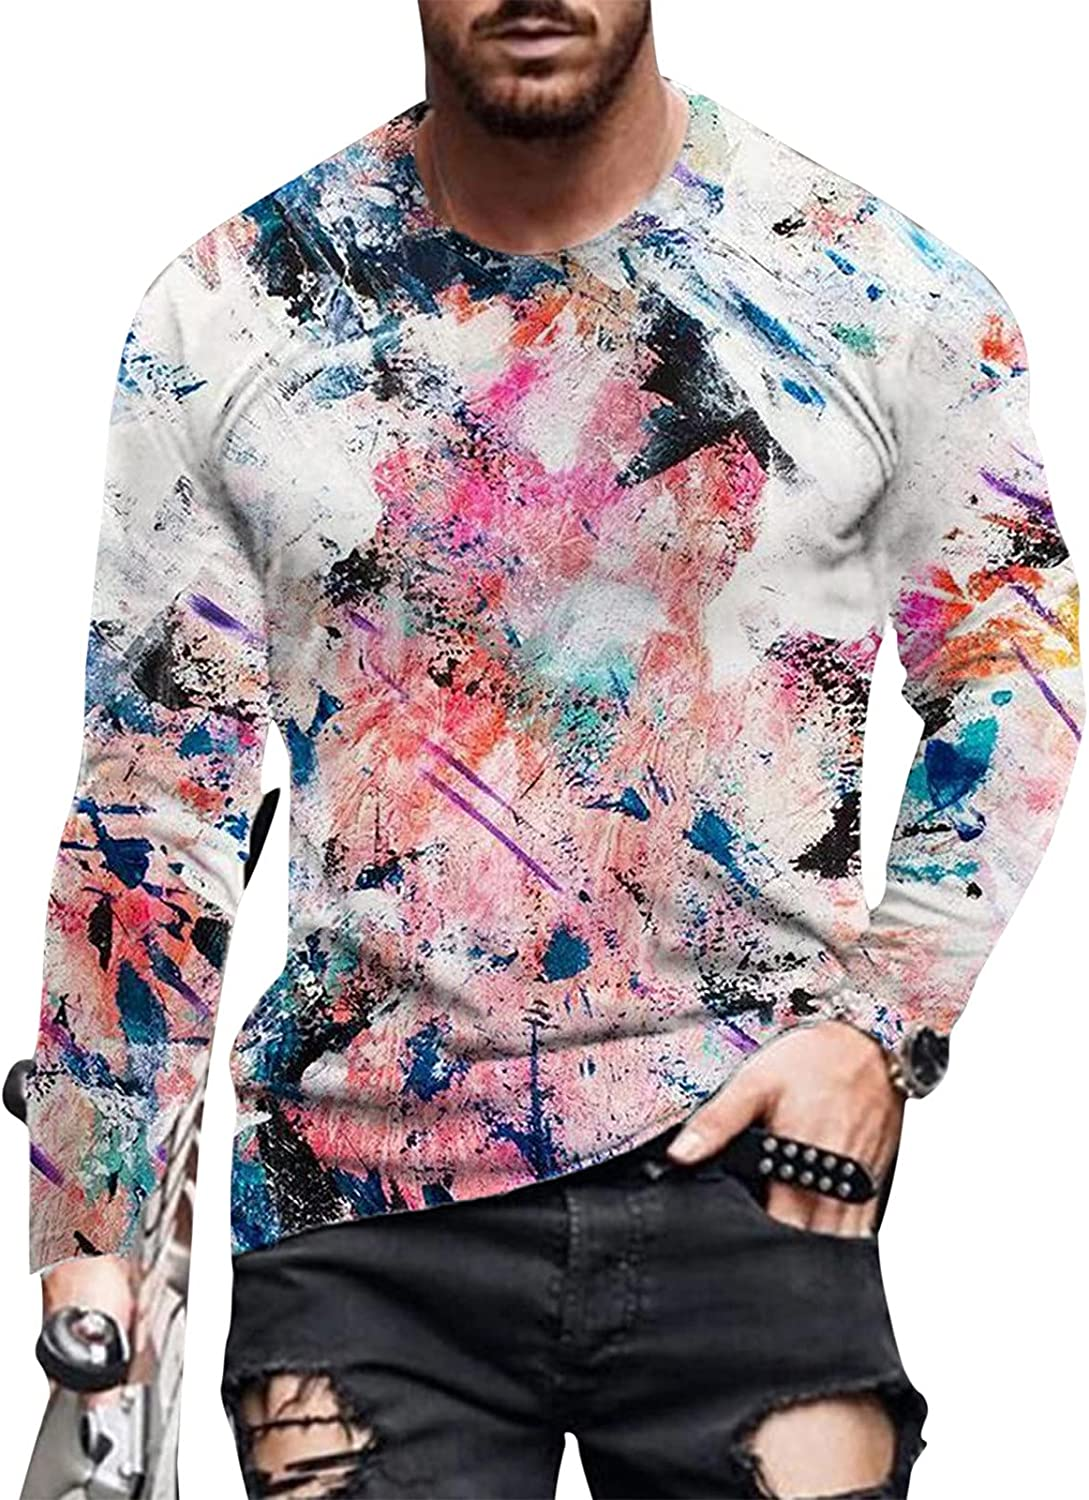 XXBR Soldier Long Sleeve T-shirts for Mens, Fashion 3D Novelty Oil Painting Print Workout Fit Casual Crewneck Tee Tops